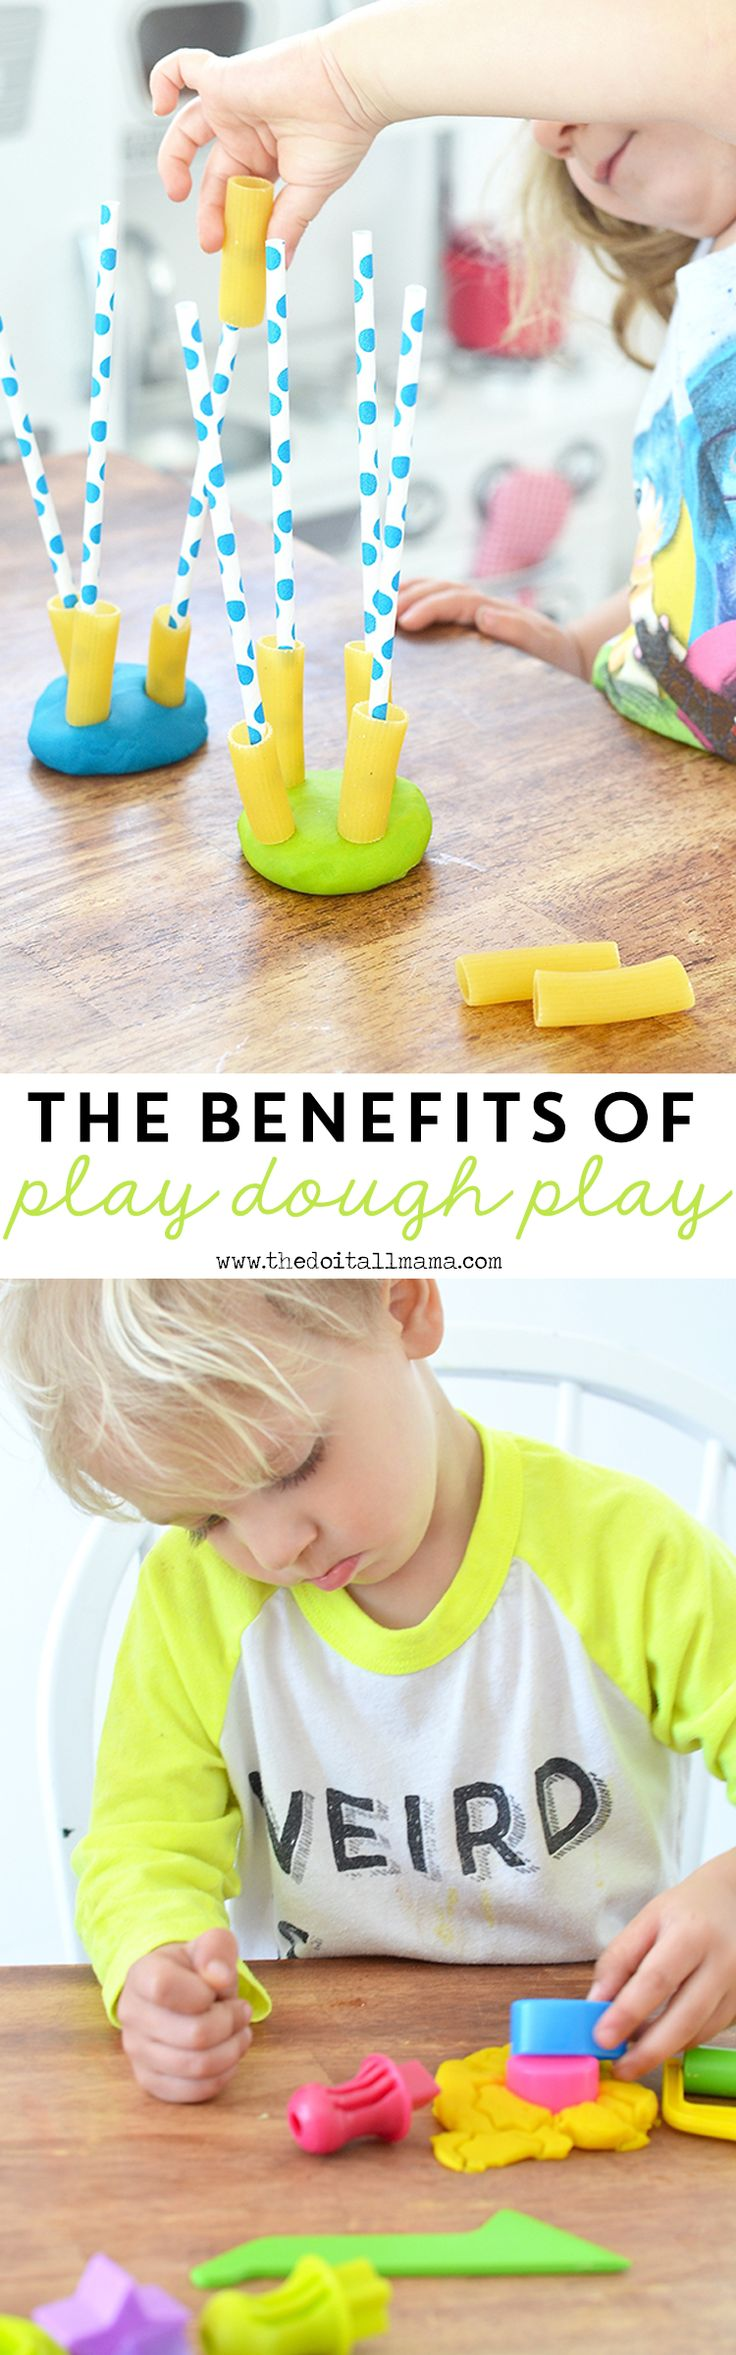 Everyone loves play dough, but did you know that it's also good for growth and development, too? Here are the benefits of play dough fun with ZDough!